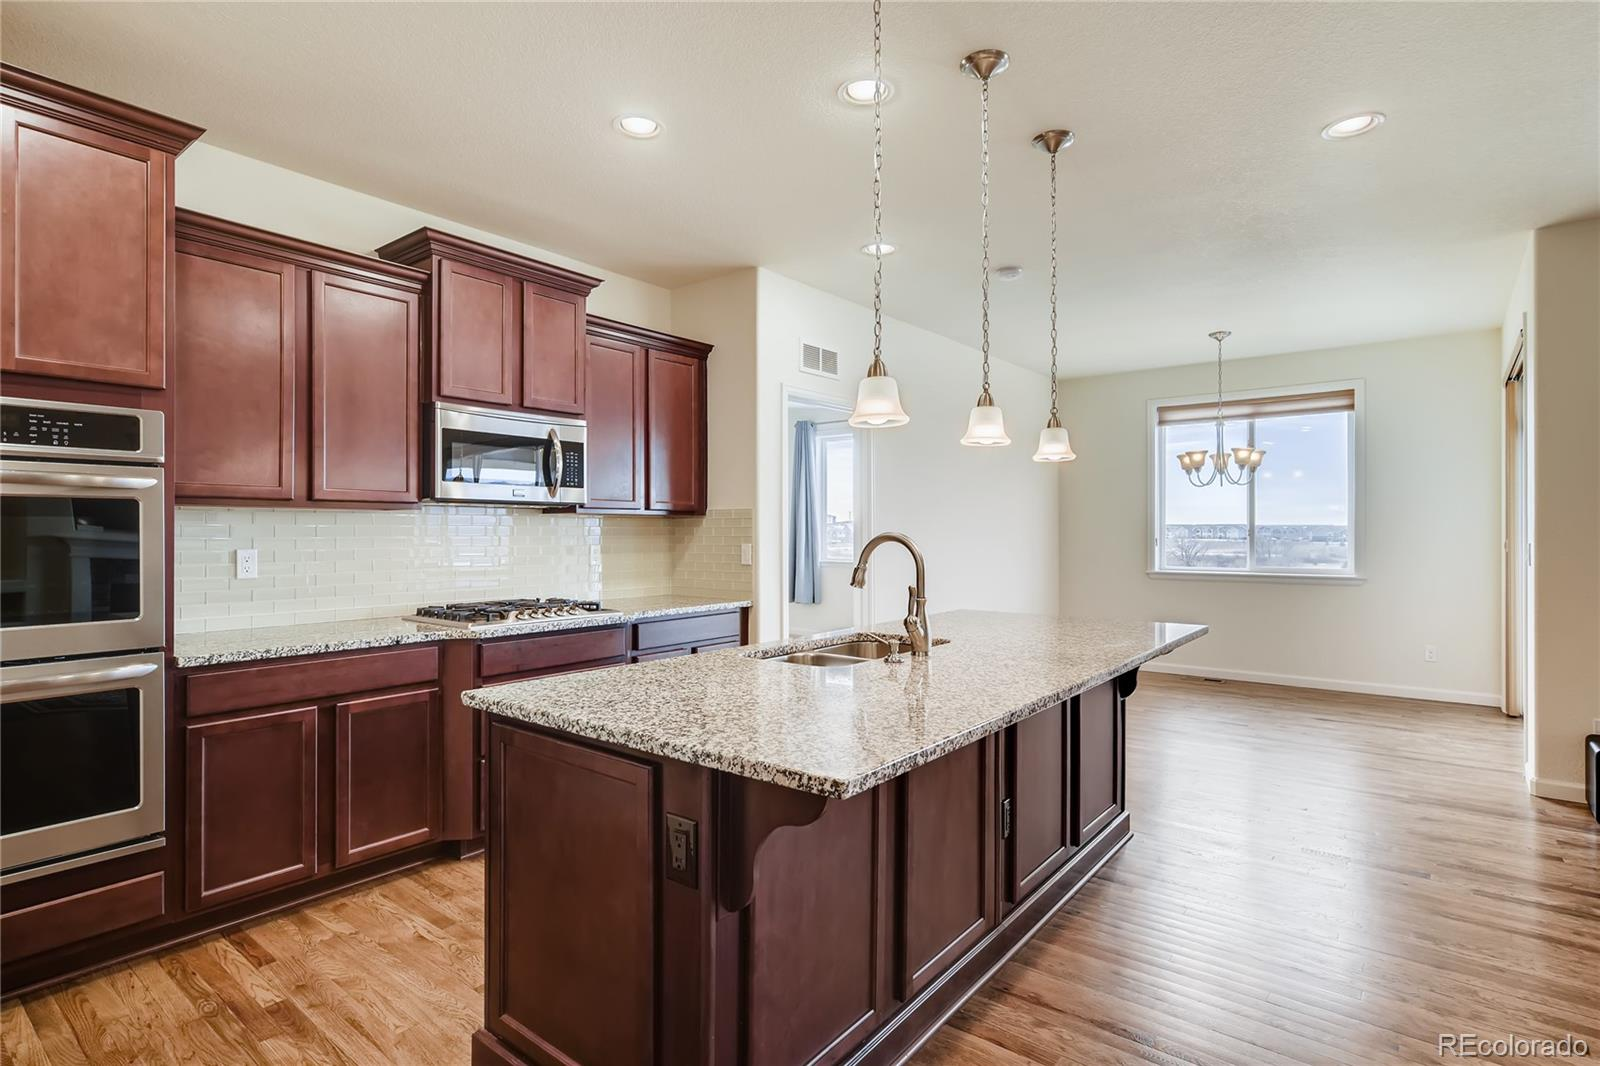 MLS# 5348867 - 13 - 1514 Promontory Bluff View, Colorado Springs, CO 80921